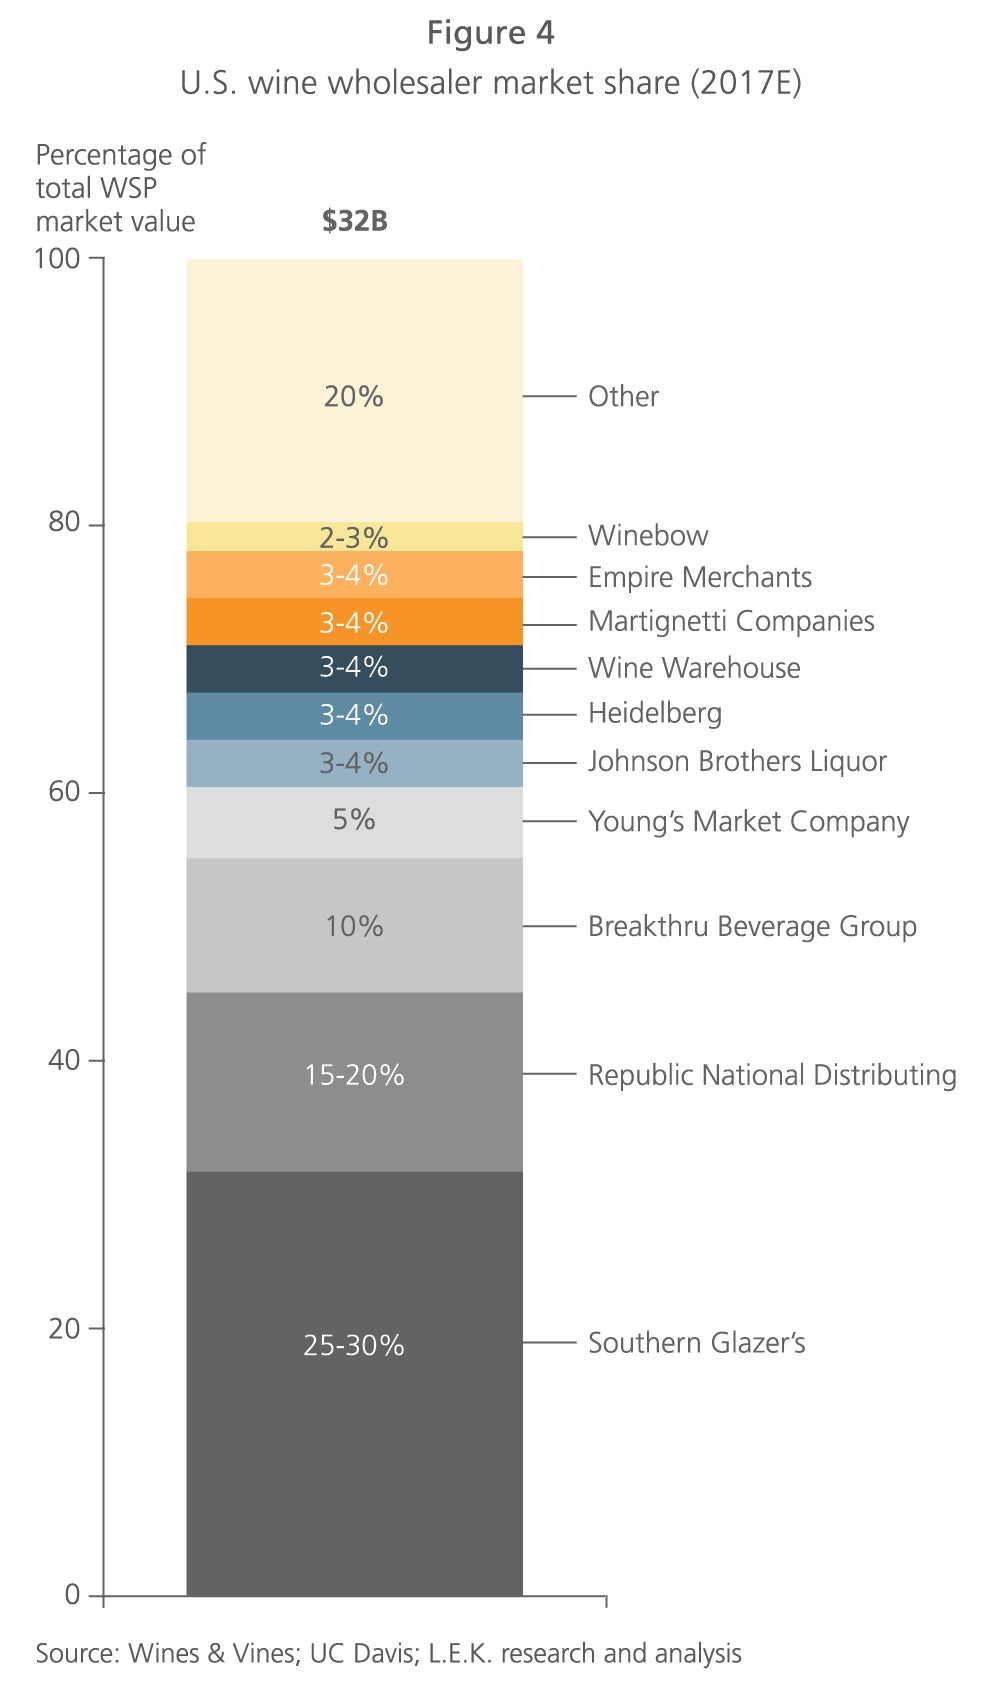 US wine wholesaler market share figure 4